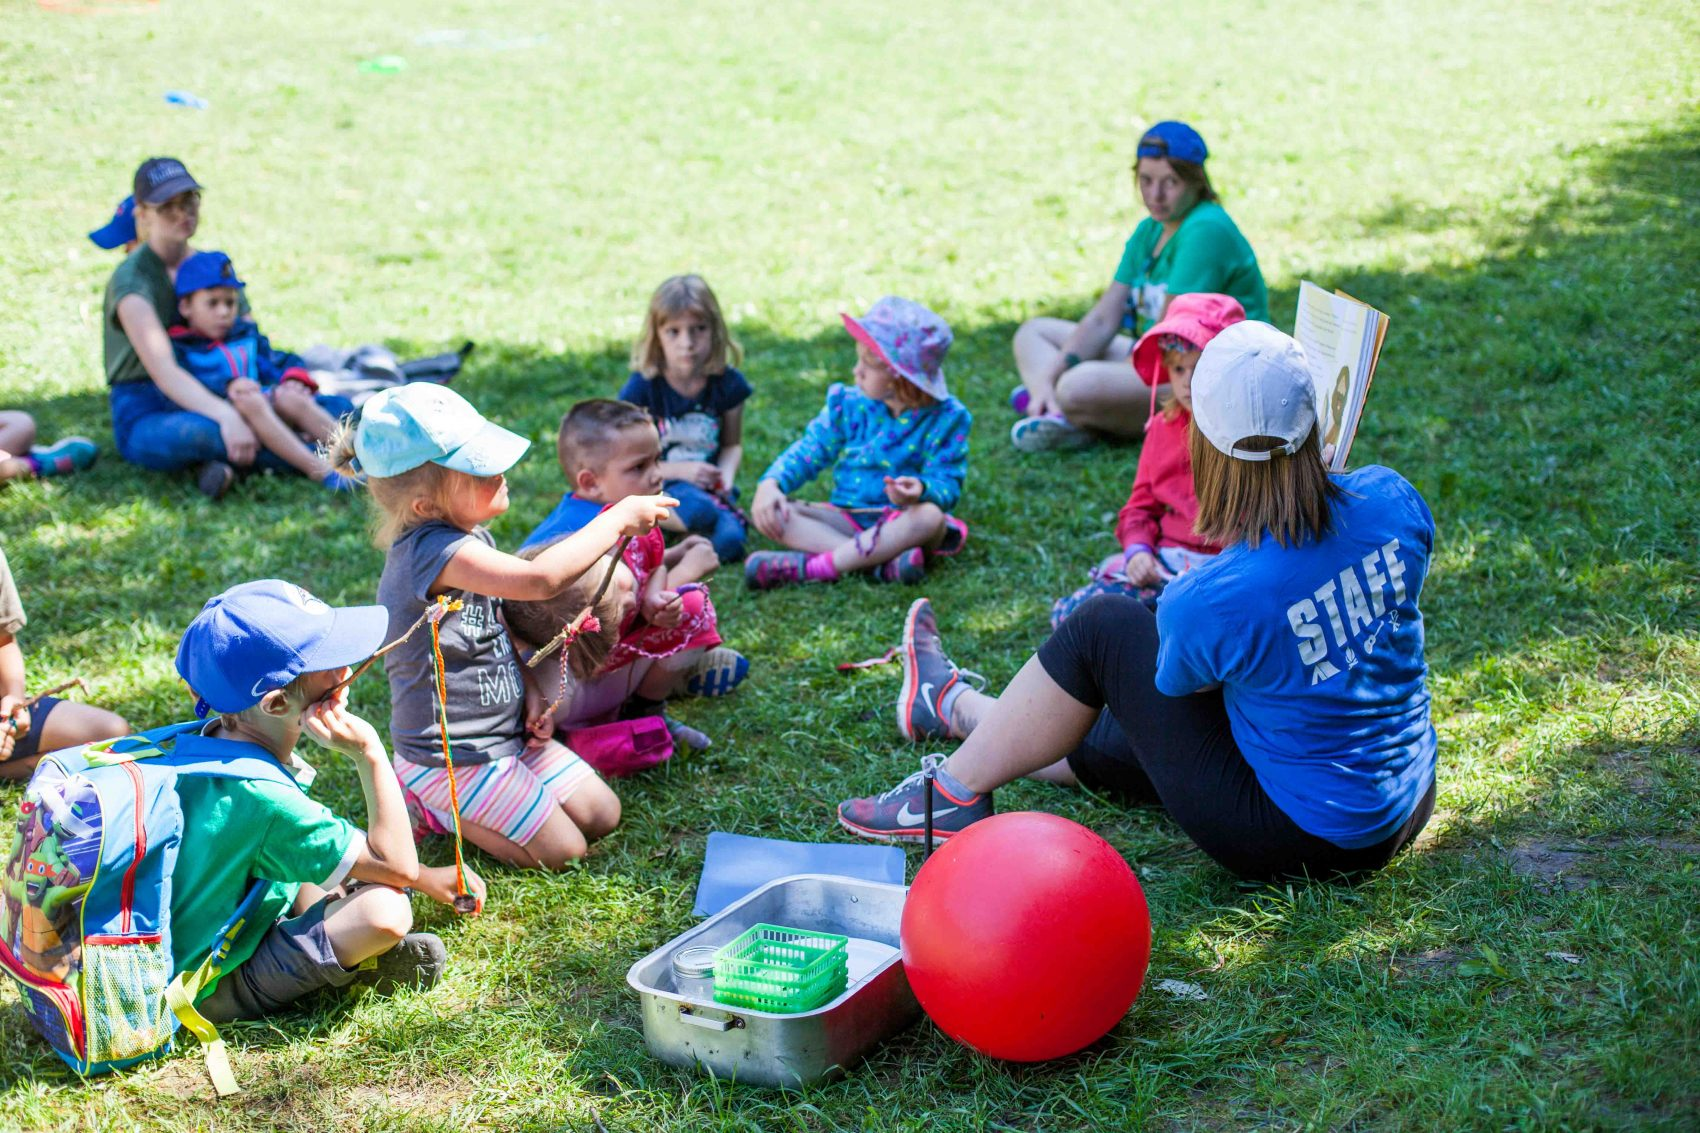 A staff member holds open a Spark bible and is reading a page to a group of young campers sitting on the grass.